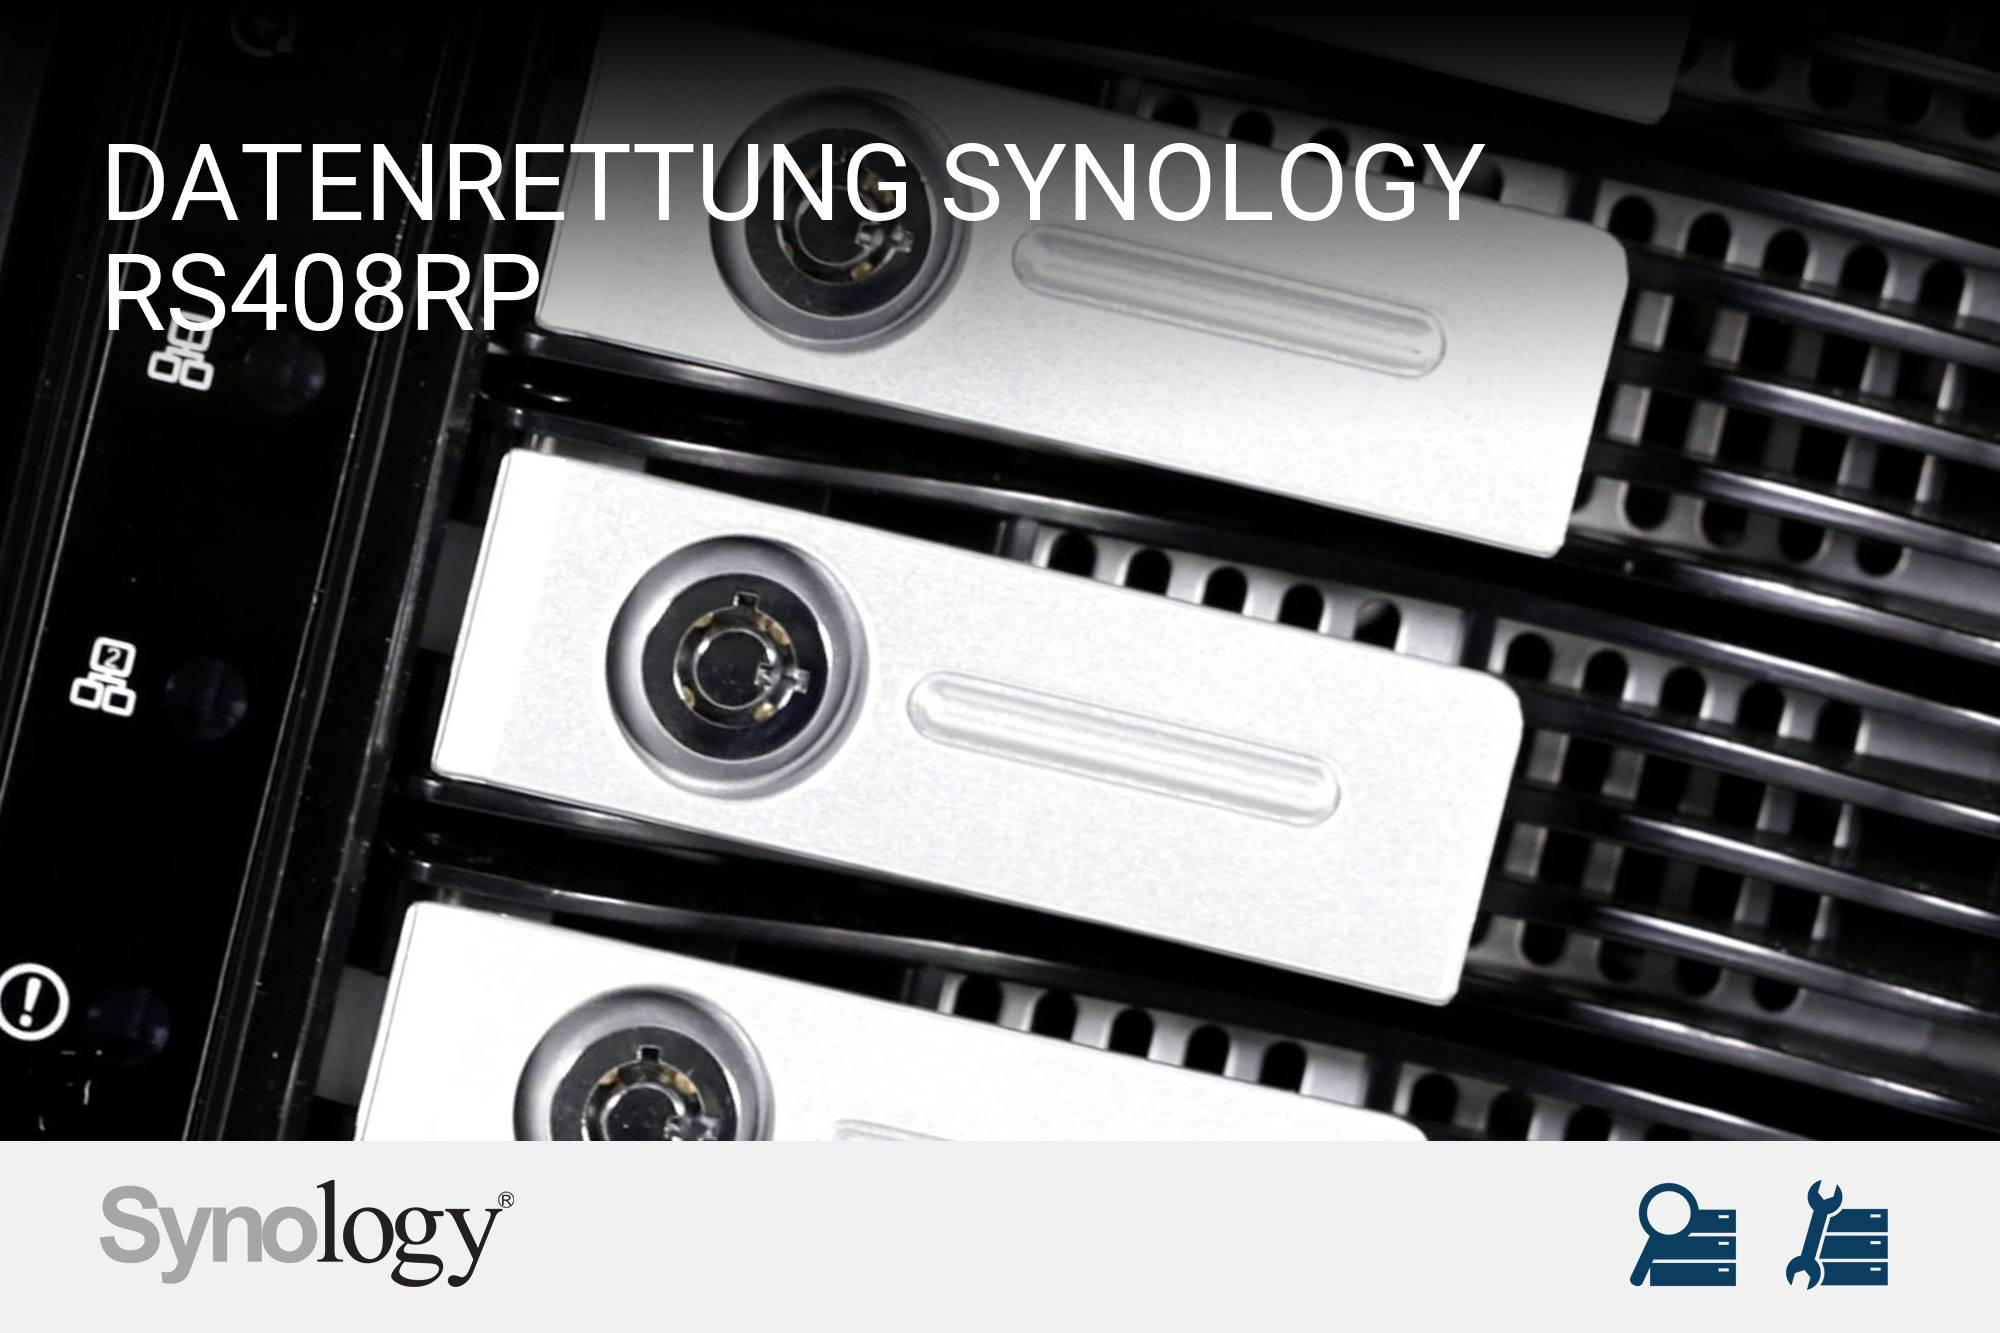 Synology RS408RP